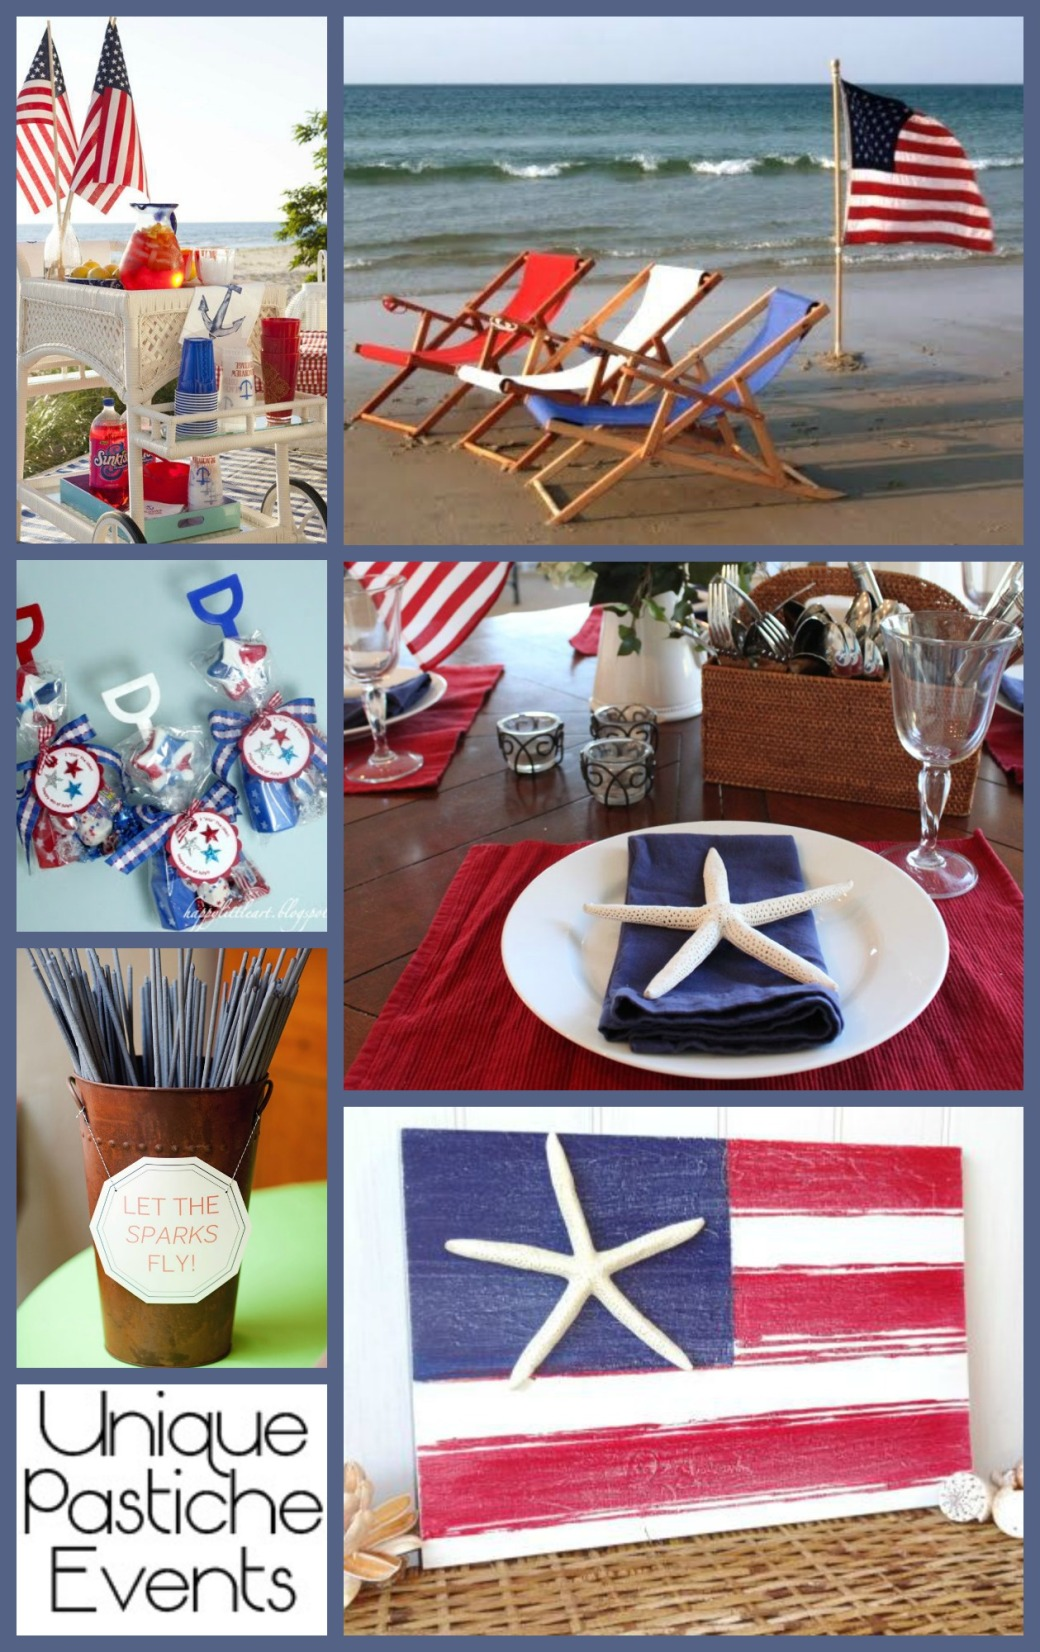 Beach-side 4th of July Party Ideas See all the details in the full post: https://uniquepasticheevents.com/2015/07/01/beach-side-4th-of-july-party-ideas/